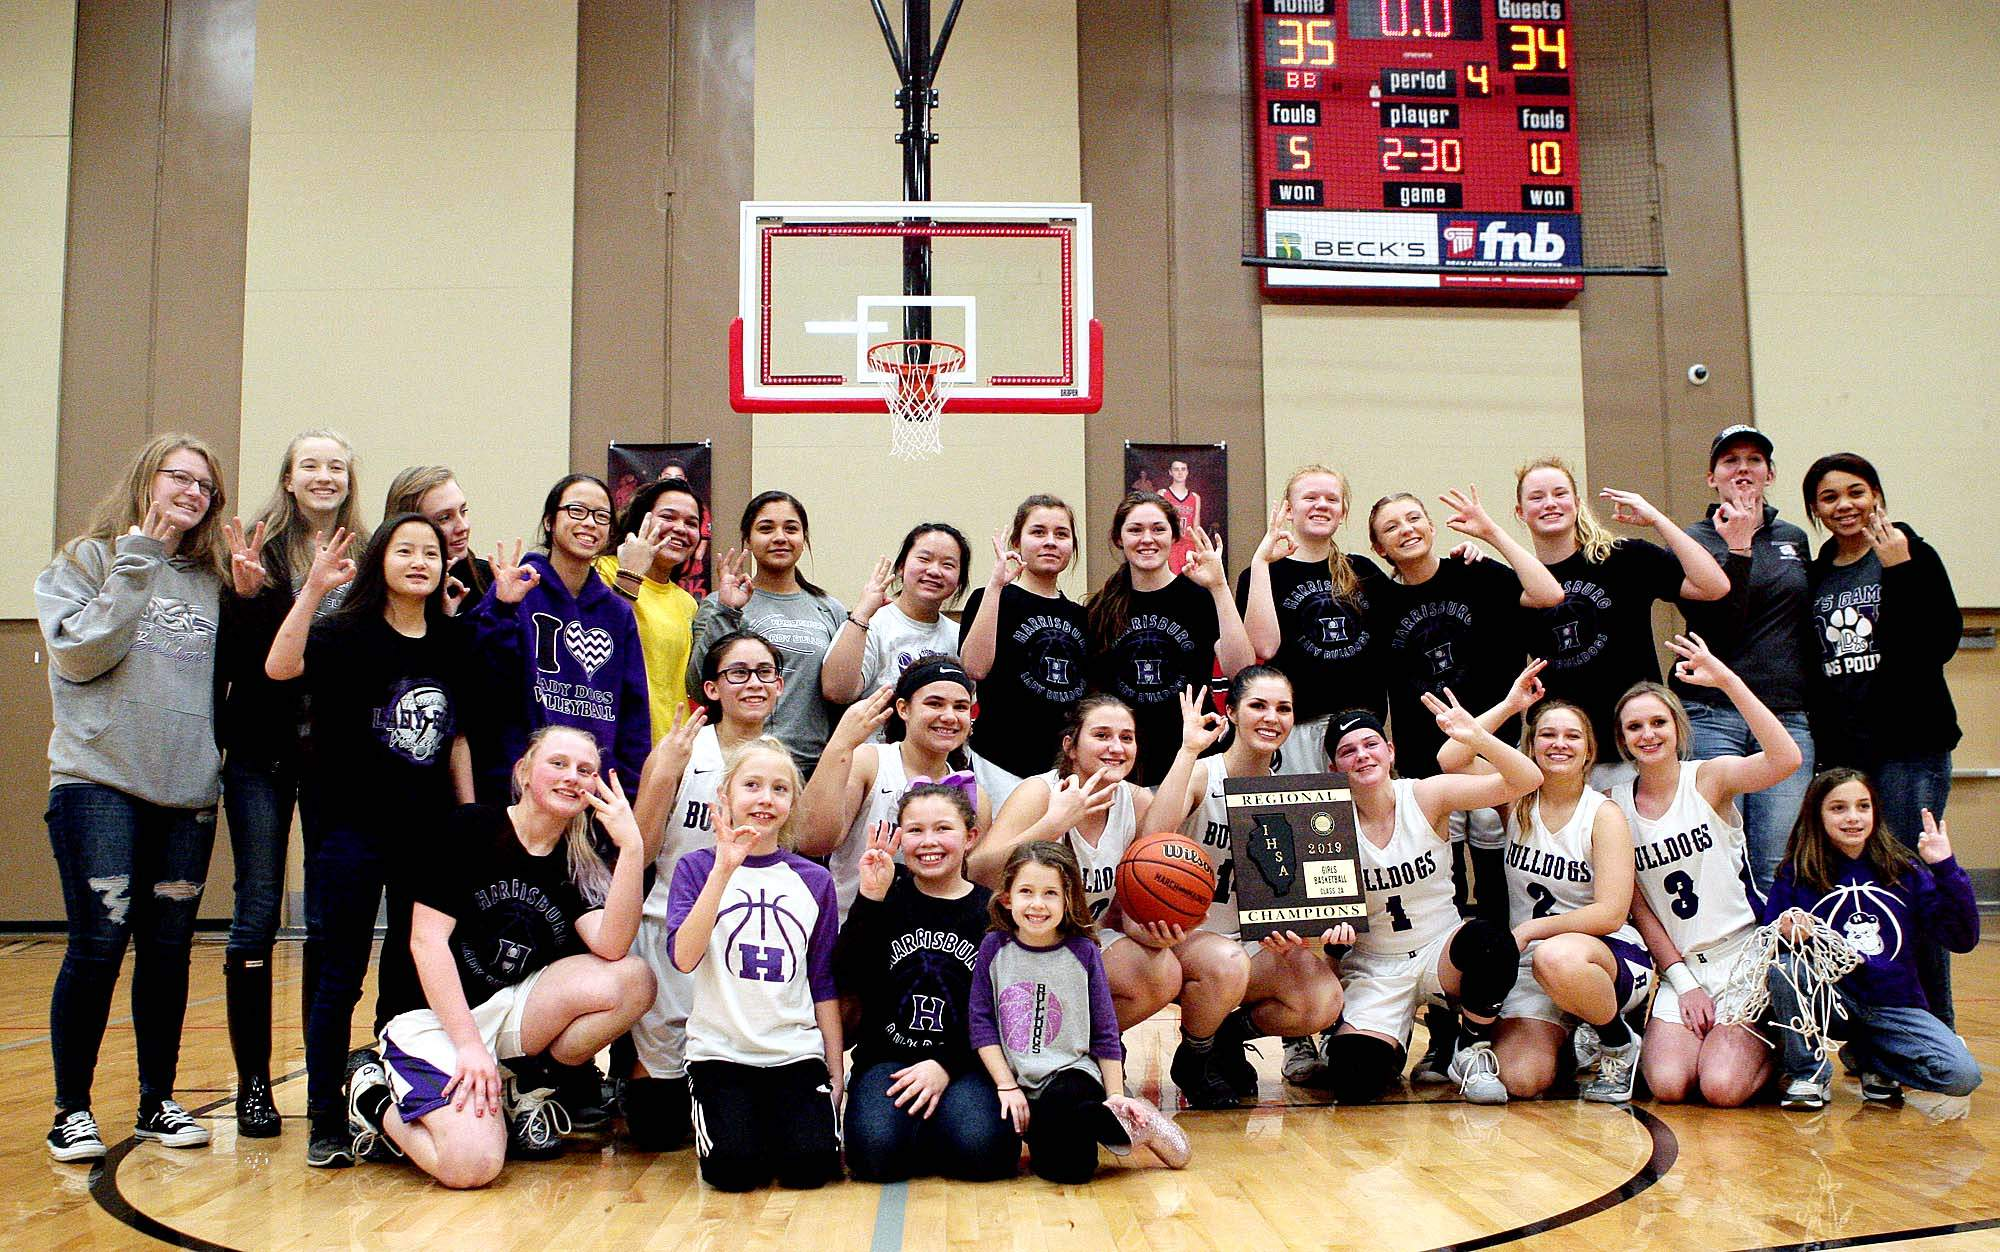 Members of the Harrisburg High School girls' basketball team pose with the IHSA Class 2A Regional Championship after knocking off Anna-Jonesboro 35-34 Thursday night at the Wayne City Regional. It was the third straight regional title for the Bulldogs.